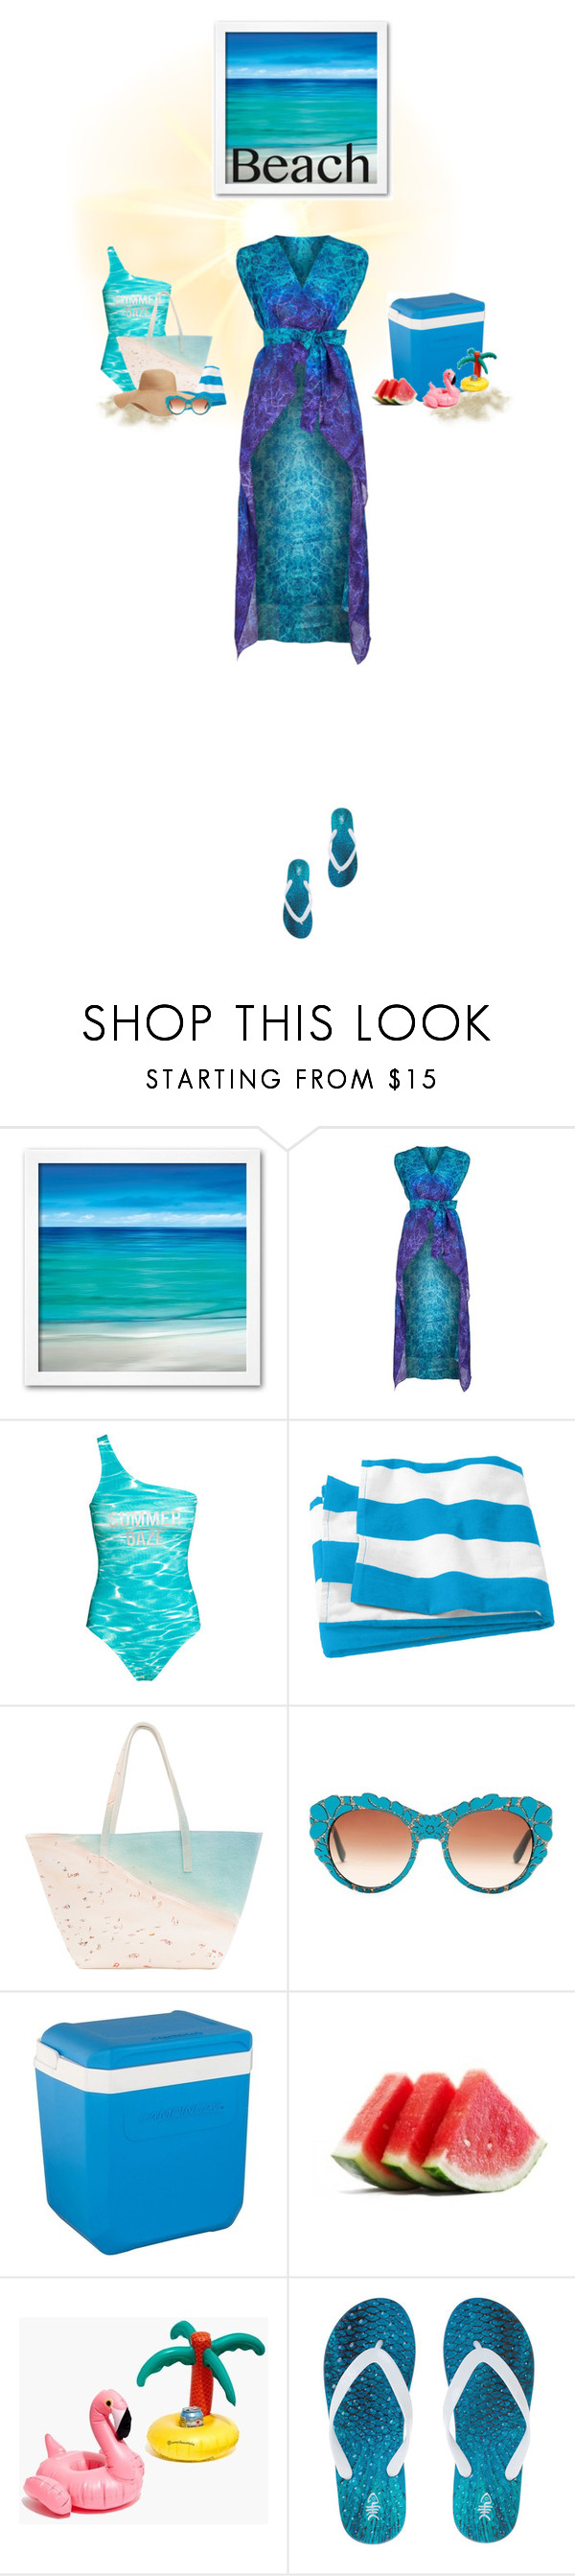 """""""BEACH.....Sun's Out: Beach Day"""" by beleev ❤ liked on Polyvore featuring Gottex, Paige Gamble, Old Navy, Dolce&Gabbana, Coleman, Madewell and beachday"""